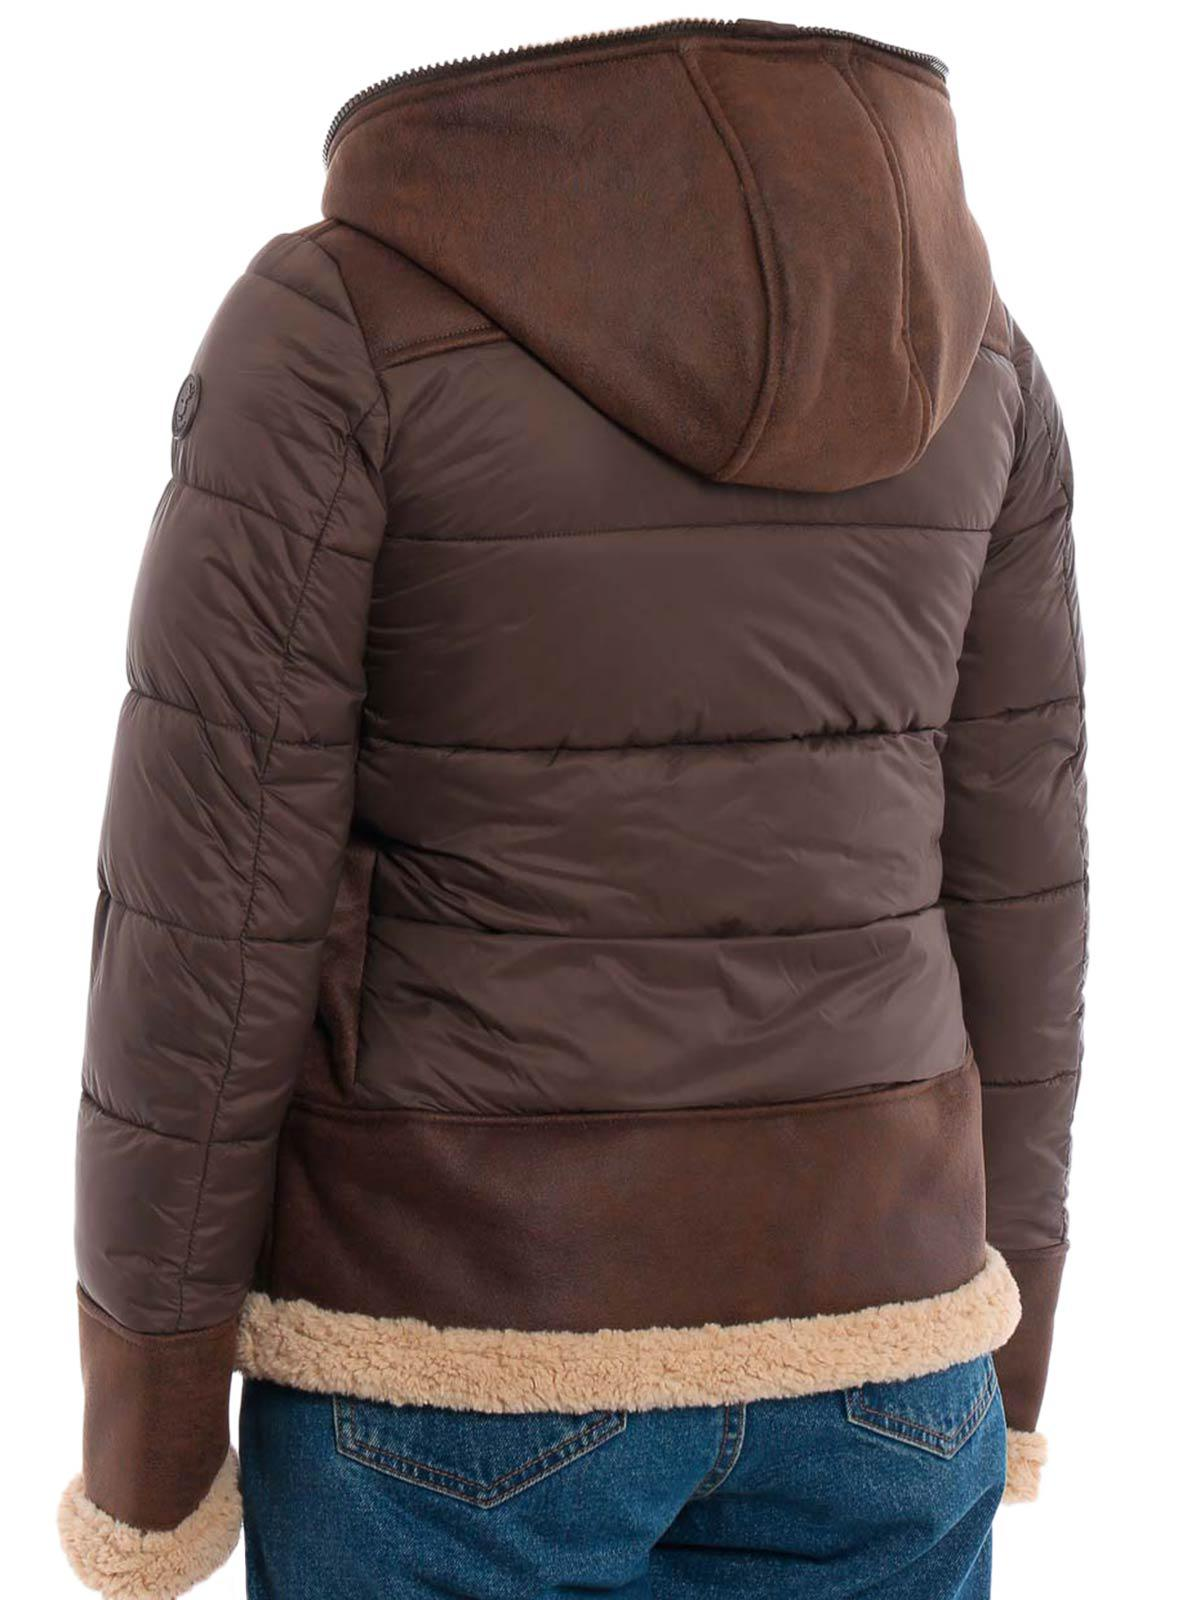 bf27b2d6de260 Lyst - Save The Duck Giubbotto in Brown